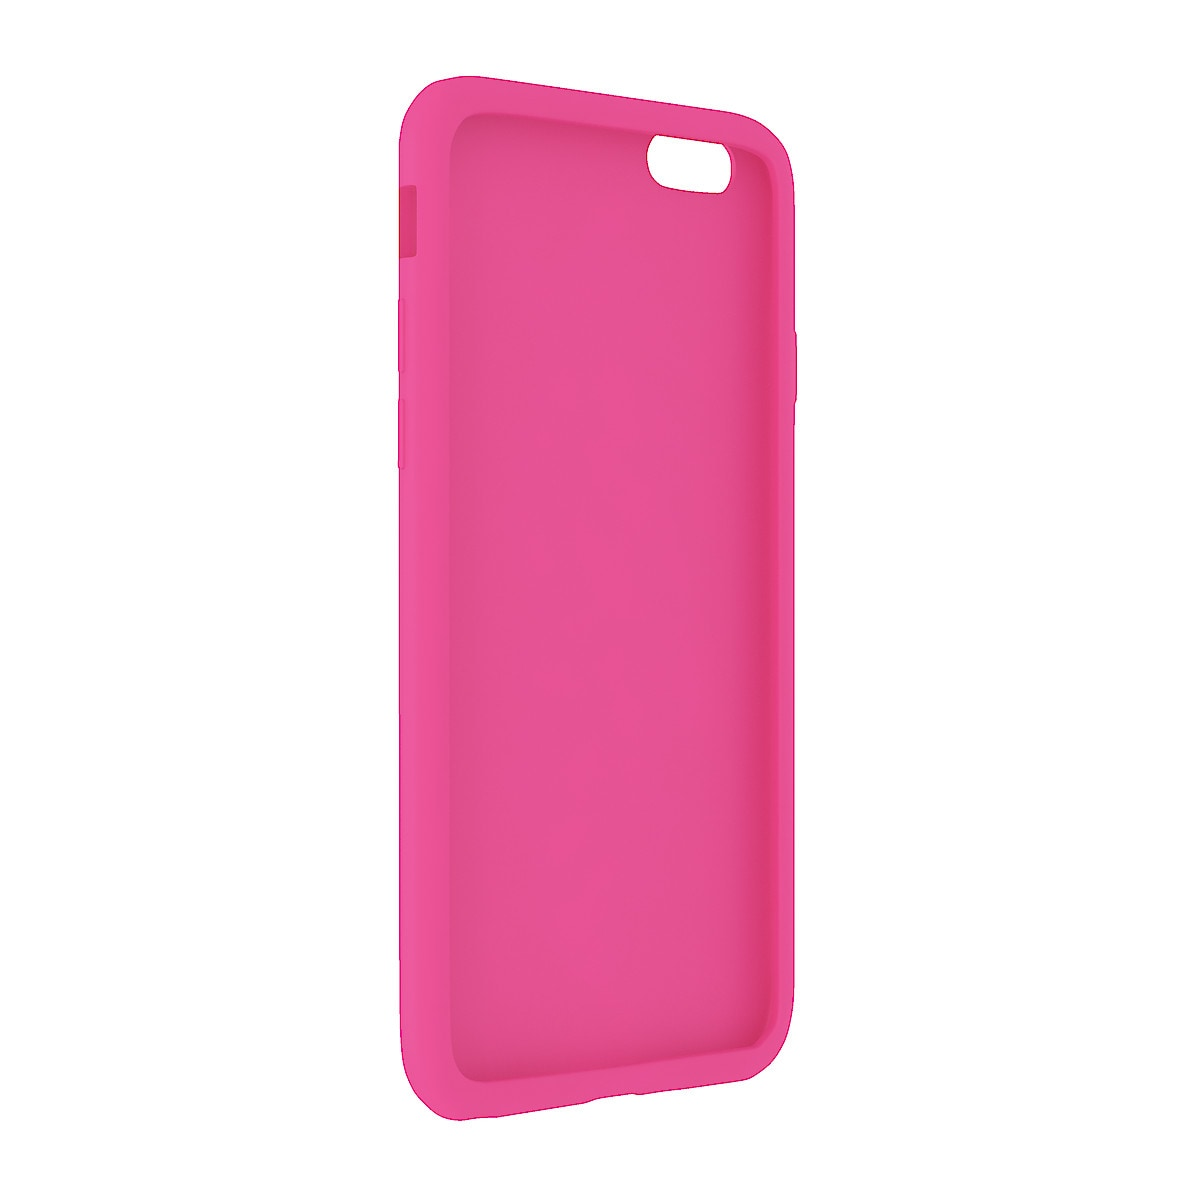 Soft Grip Mobile Phone Case for iPhone 6/6S